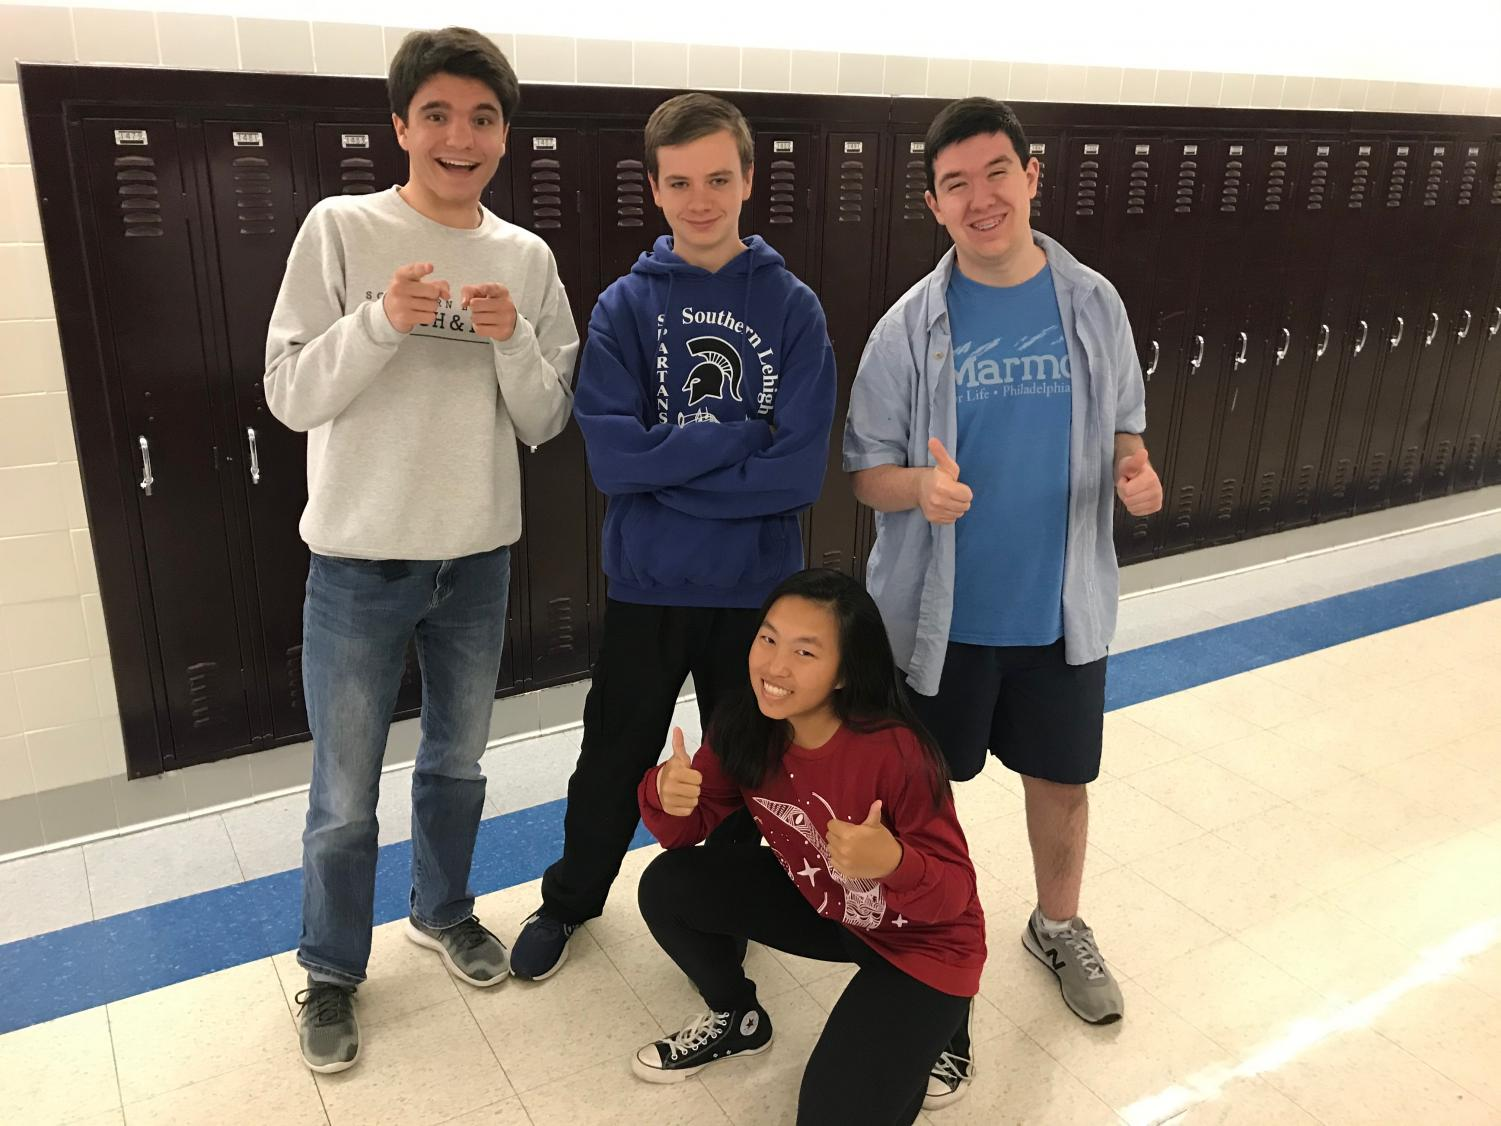 (from left to right) Junior President Cameron Hines, Vice President Jack Ziets, Secretary Erica Wang, and Treasurer Michael Woods posing for a picture after winning the class election in October.